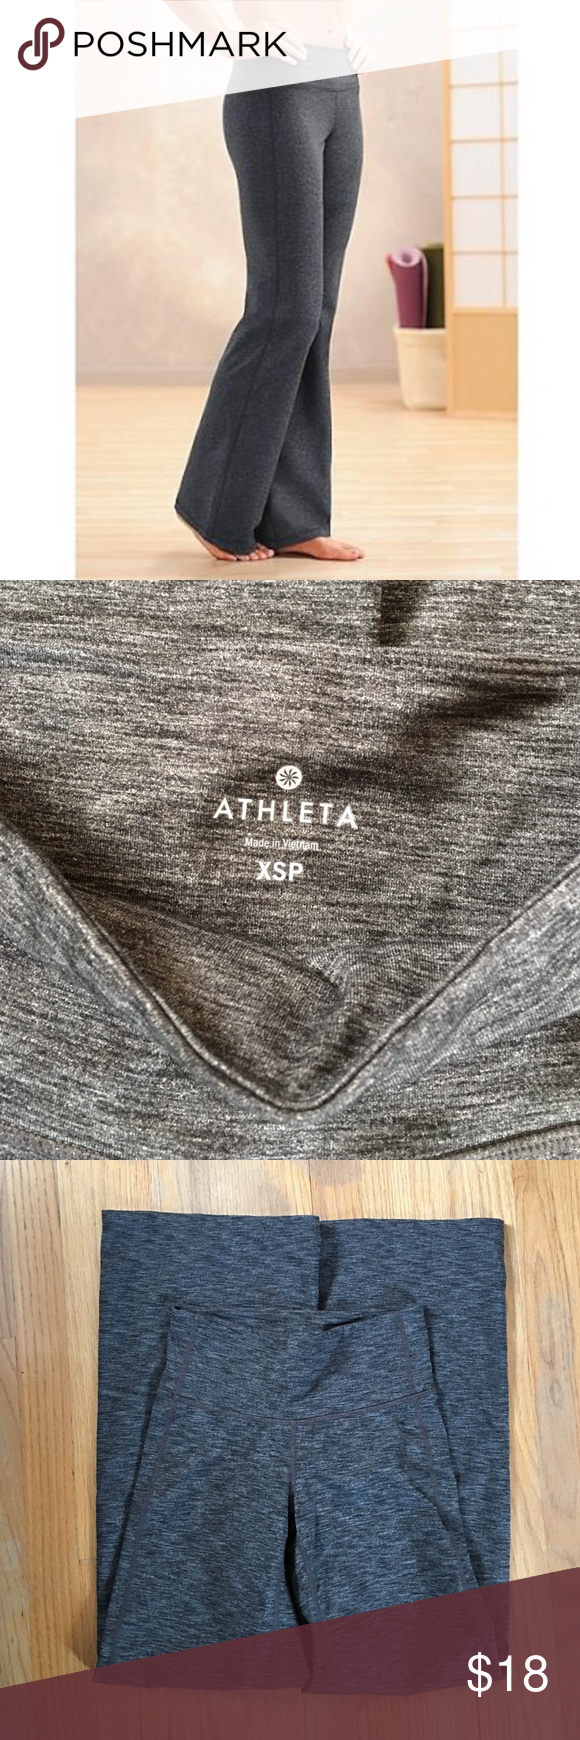 """Athleta Gray Space-Dyed Chaturanga Pant Reposh of these awesome XSP Chaturanga yoga pants from Athleta. Waist was a little too short for me. Gorgeous space-dyed gray fabric with plenty of stretch. 29"""" inseam. Would best fit a 26"""" waist. Athleta Pants"""